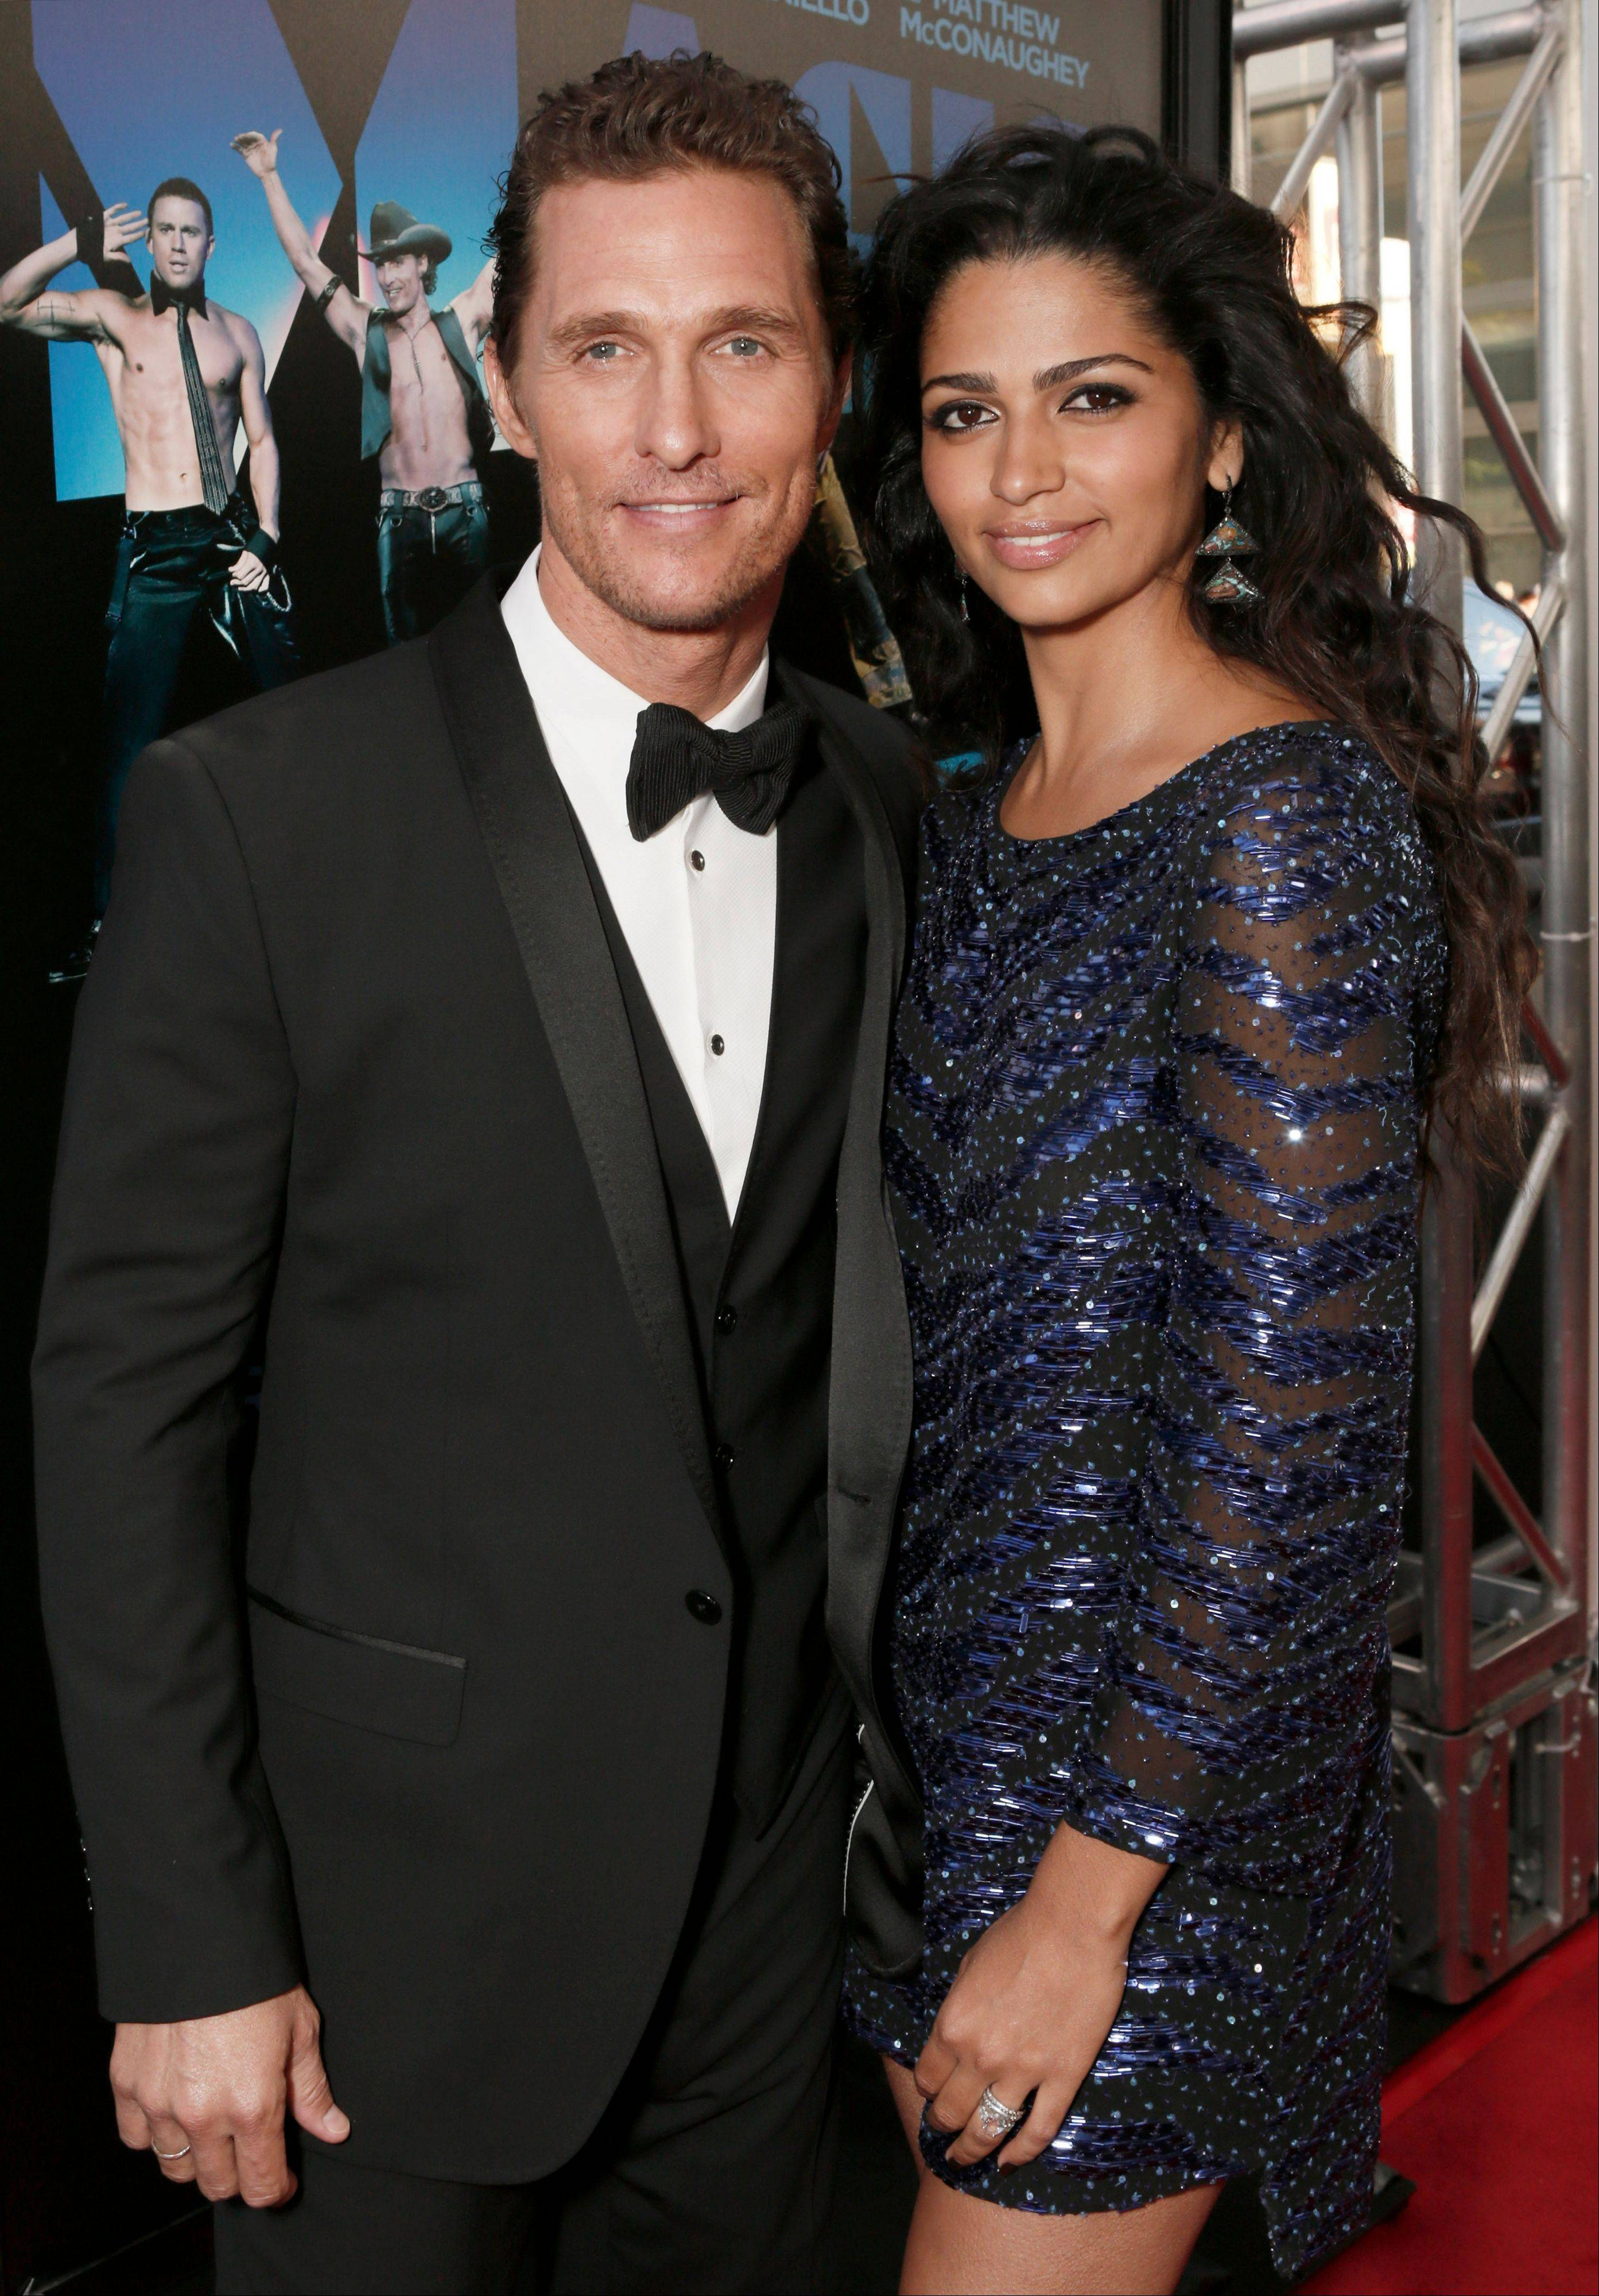 Actor Matthew McConaughey and his wife Camila Alves McConaughey are expecting their third child. McConaughey, 42, wed 29-year-old Alves last month in a ceremony at their Austin, Texas home. The couple have a son named Levi, who turns 4-years-old this week and a 2-year-old daughter named Vida.